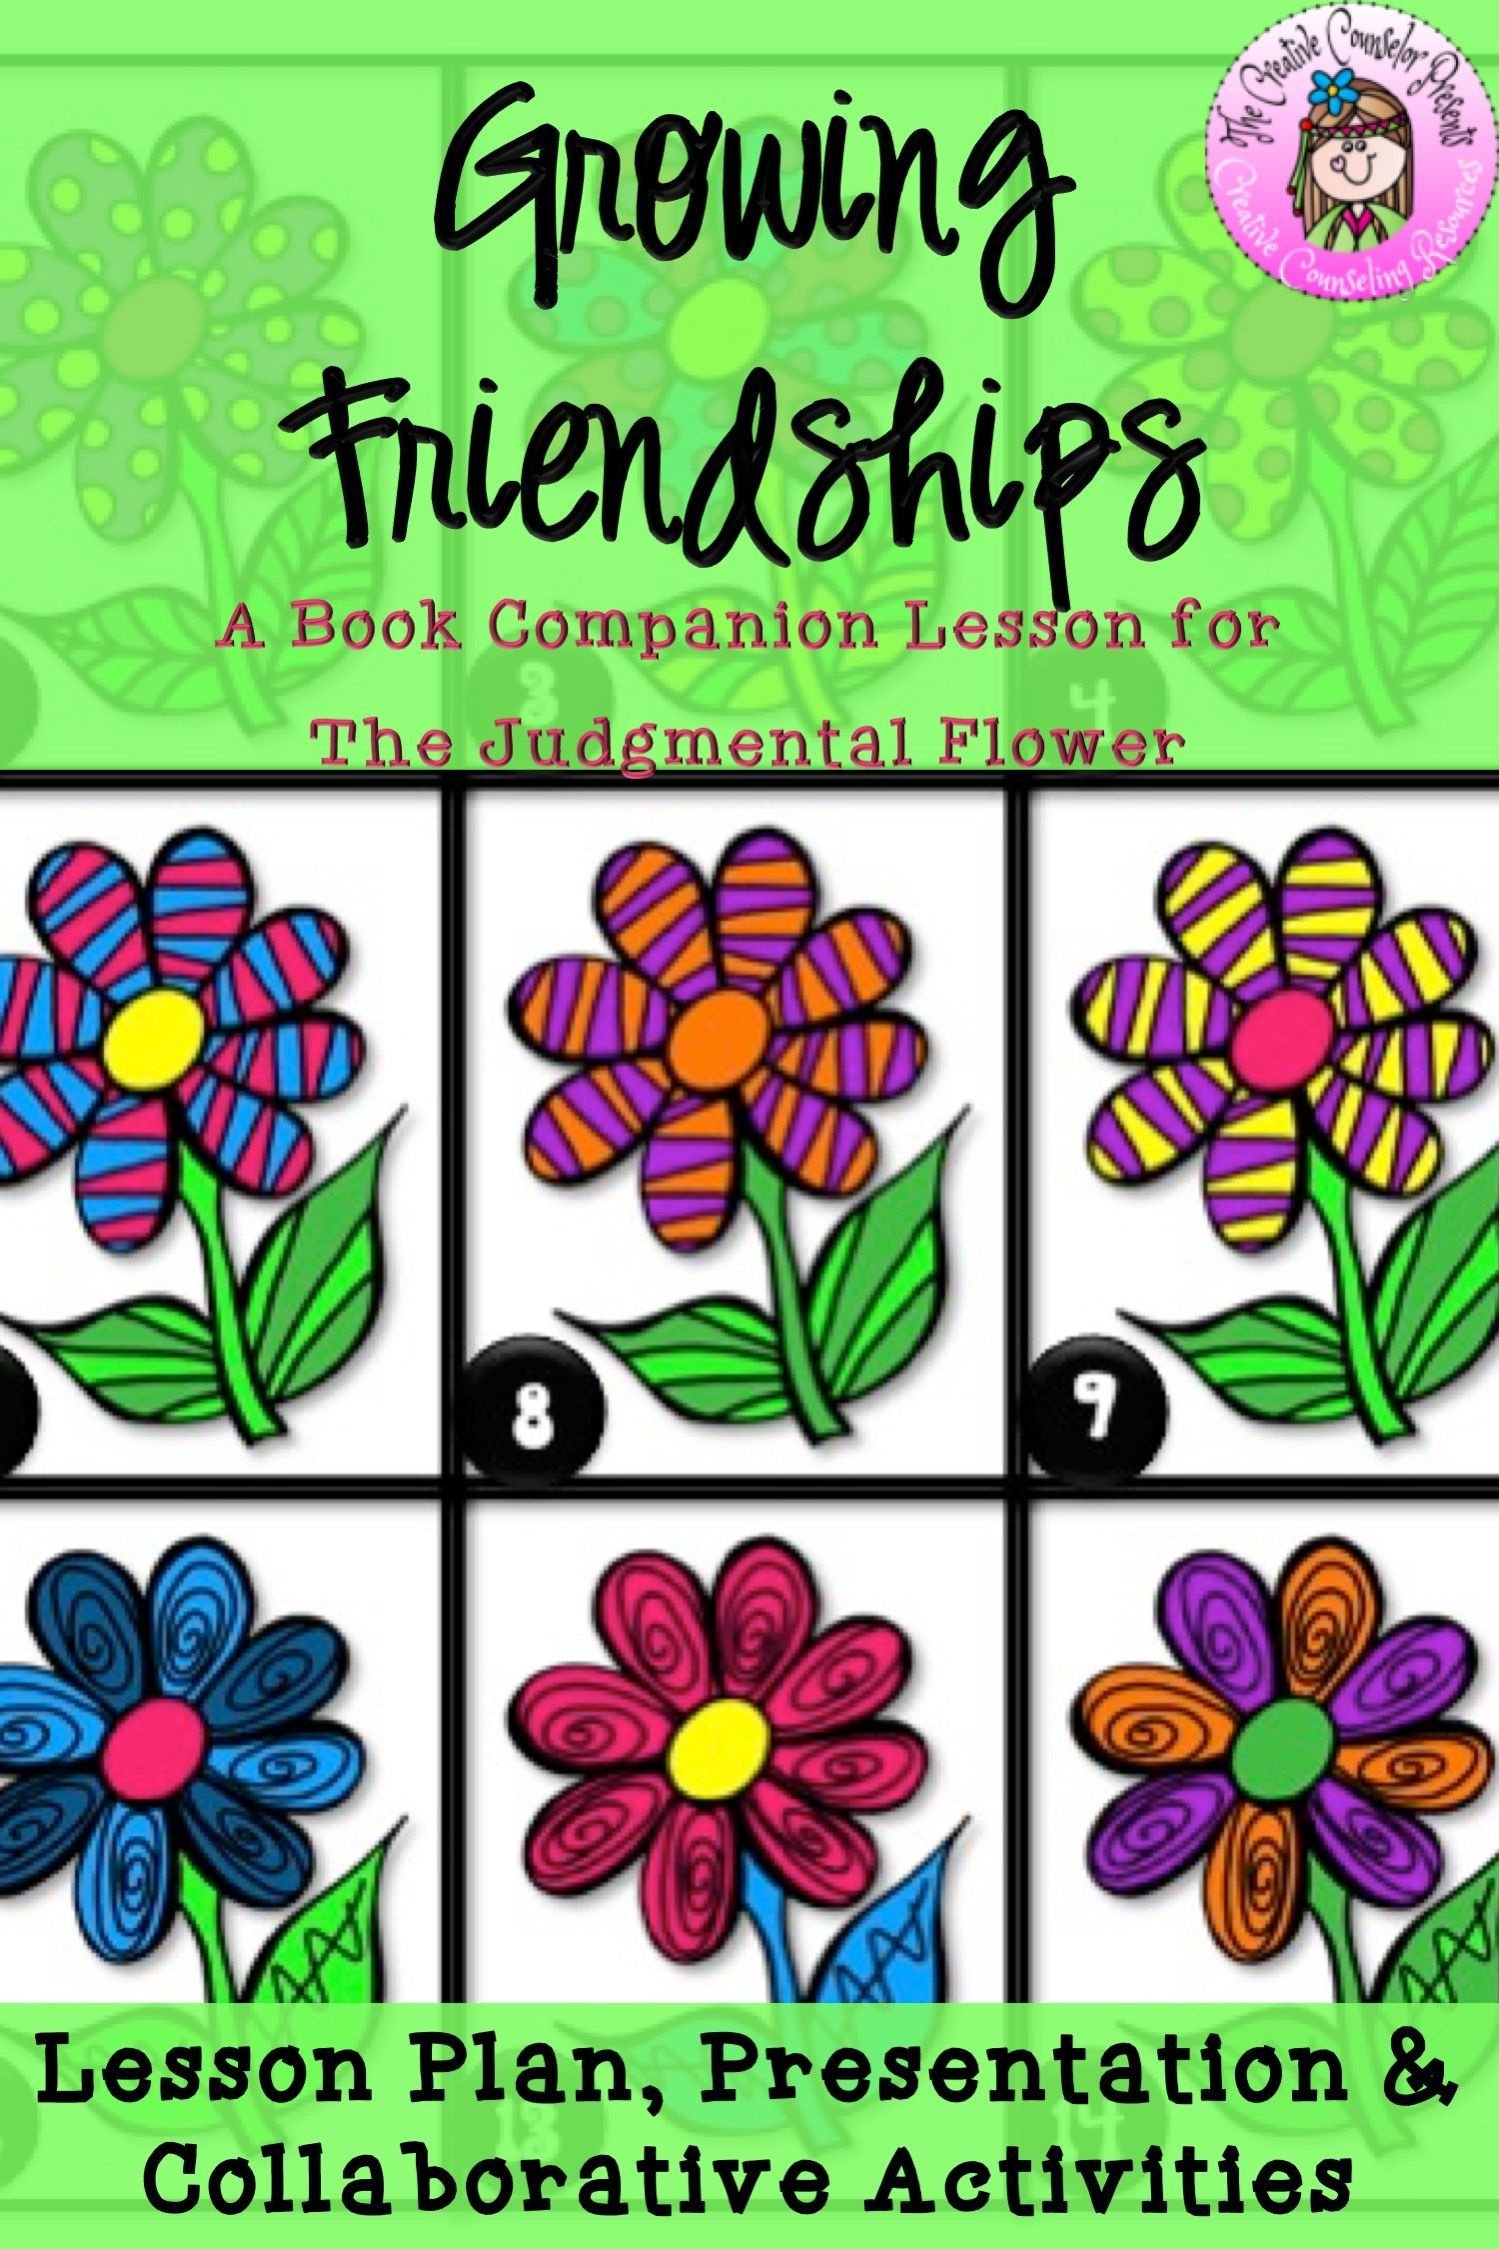 Growing Friendships With Flower Power The Judgmental